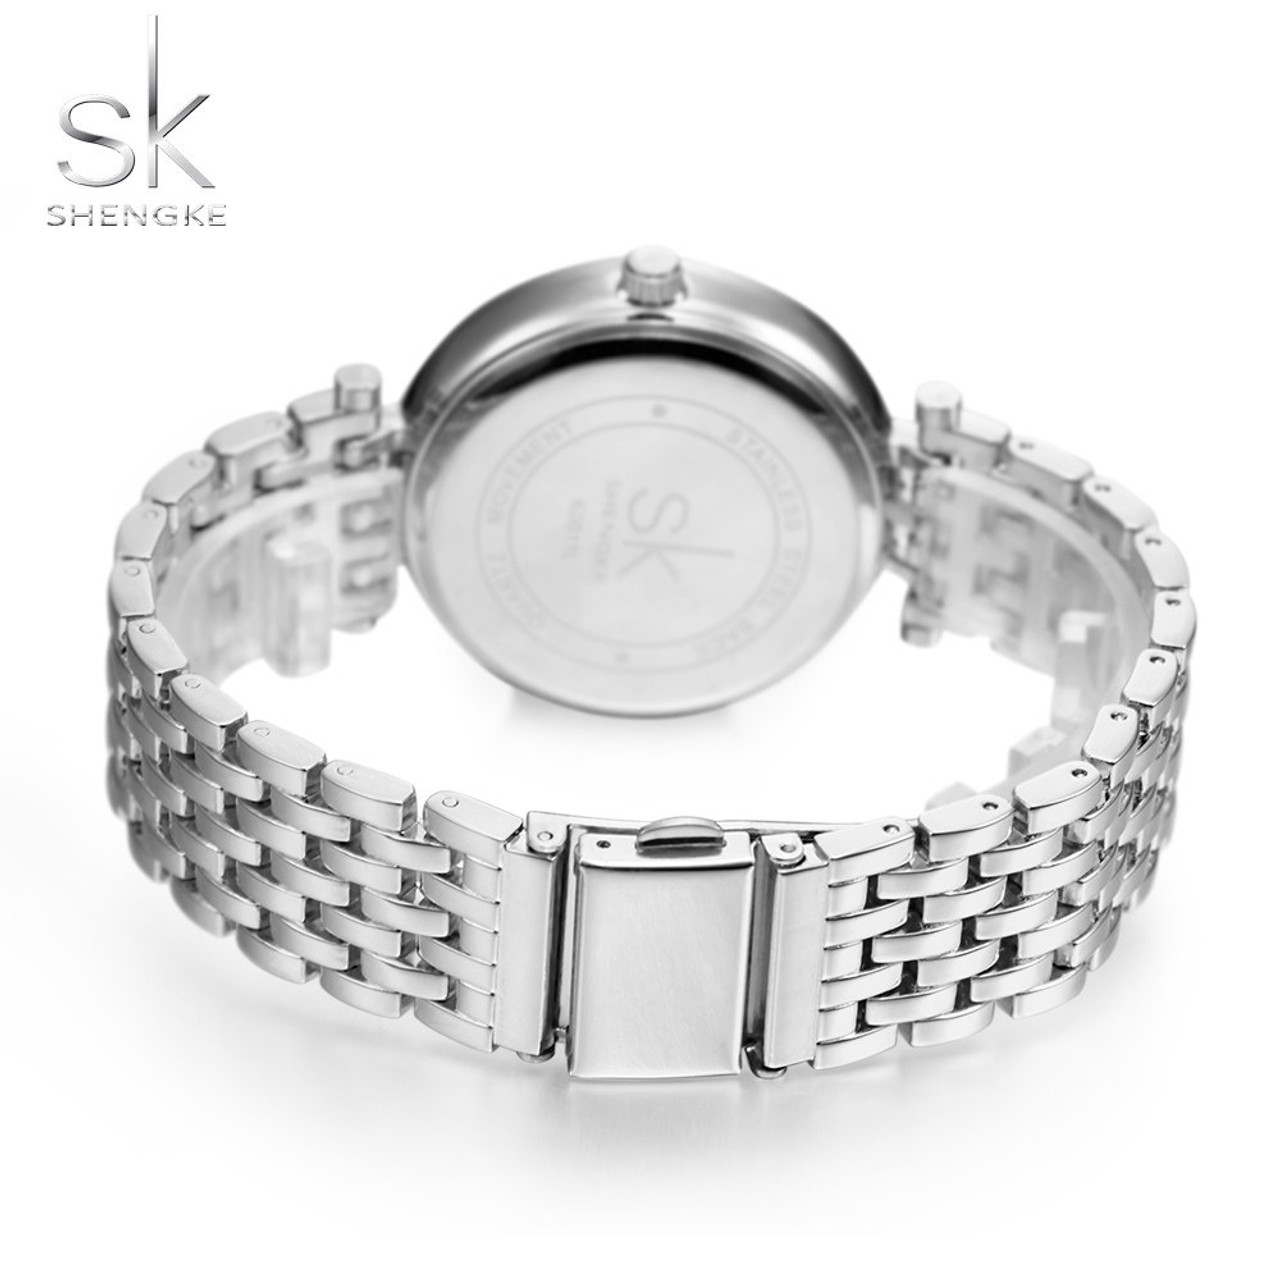 Shengke Luxury Women Watch Brands Crystal Sliver Dial Fashion Design